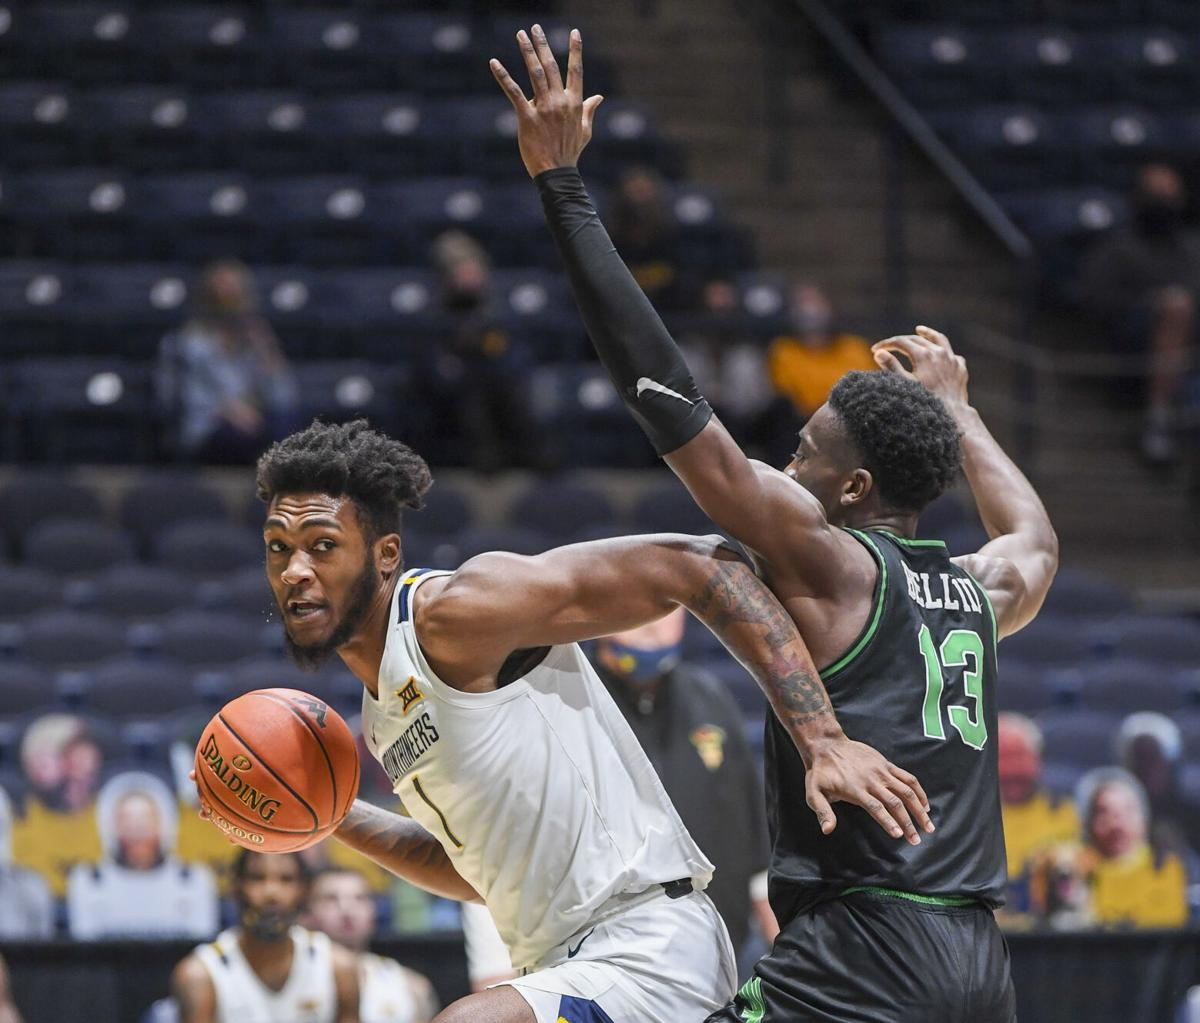 West Virginia forward Derek Culver drives in on a North Texas defender in West Virginia's 62-50 win over the Mean Green at the WVU Coliseum in Morgantown, W.Va., on Dec. 11, 2020.